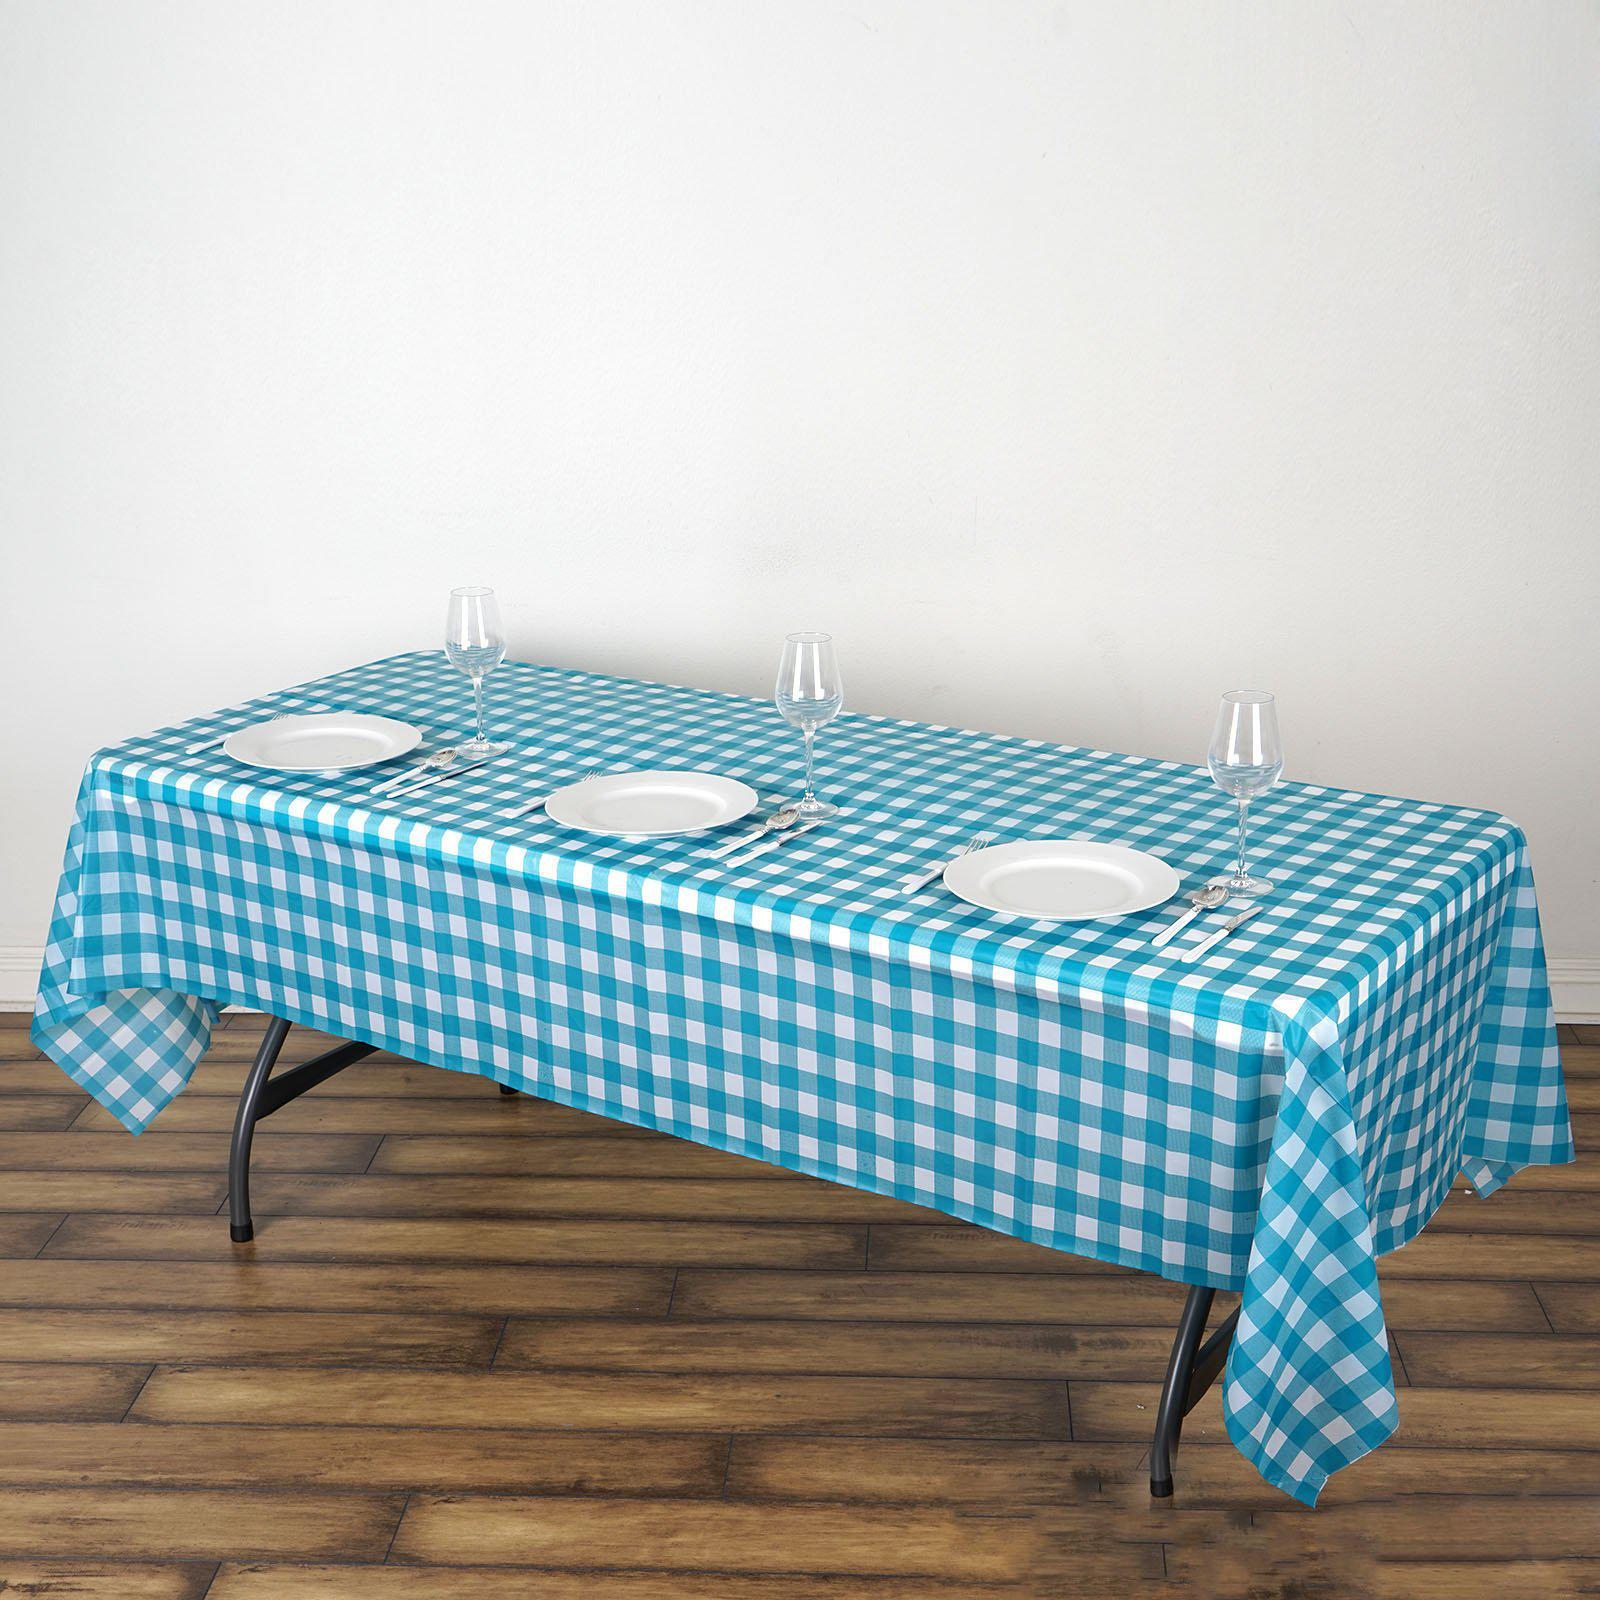 Premium Thickness Disposable Table Cover Classic Pink and Baby Blue 108 x 54 Inch 8 Plastic Tablecloths 4 Each Color